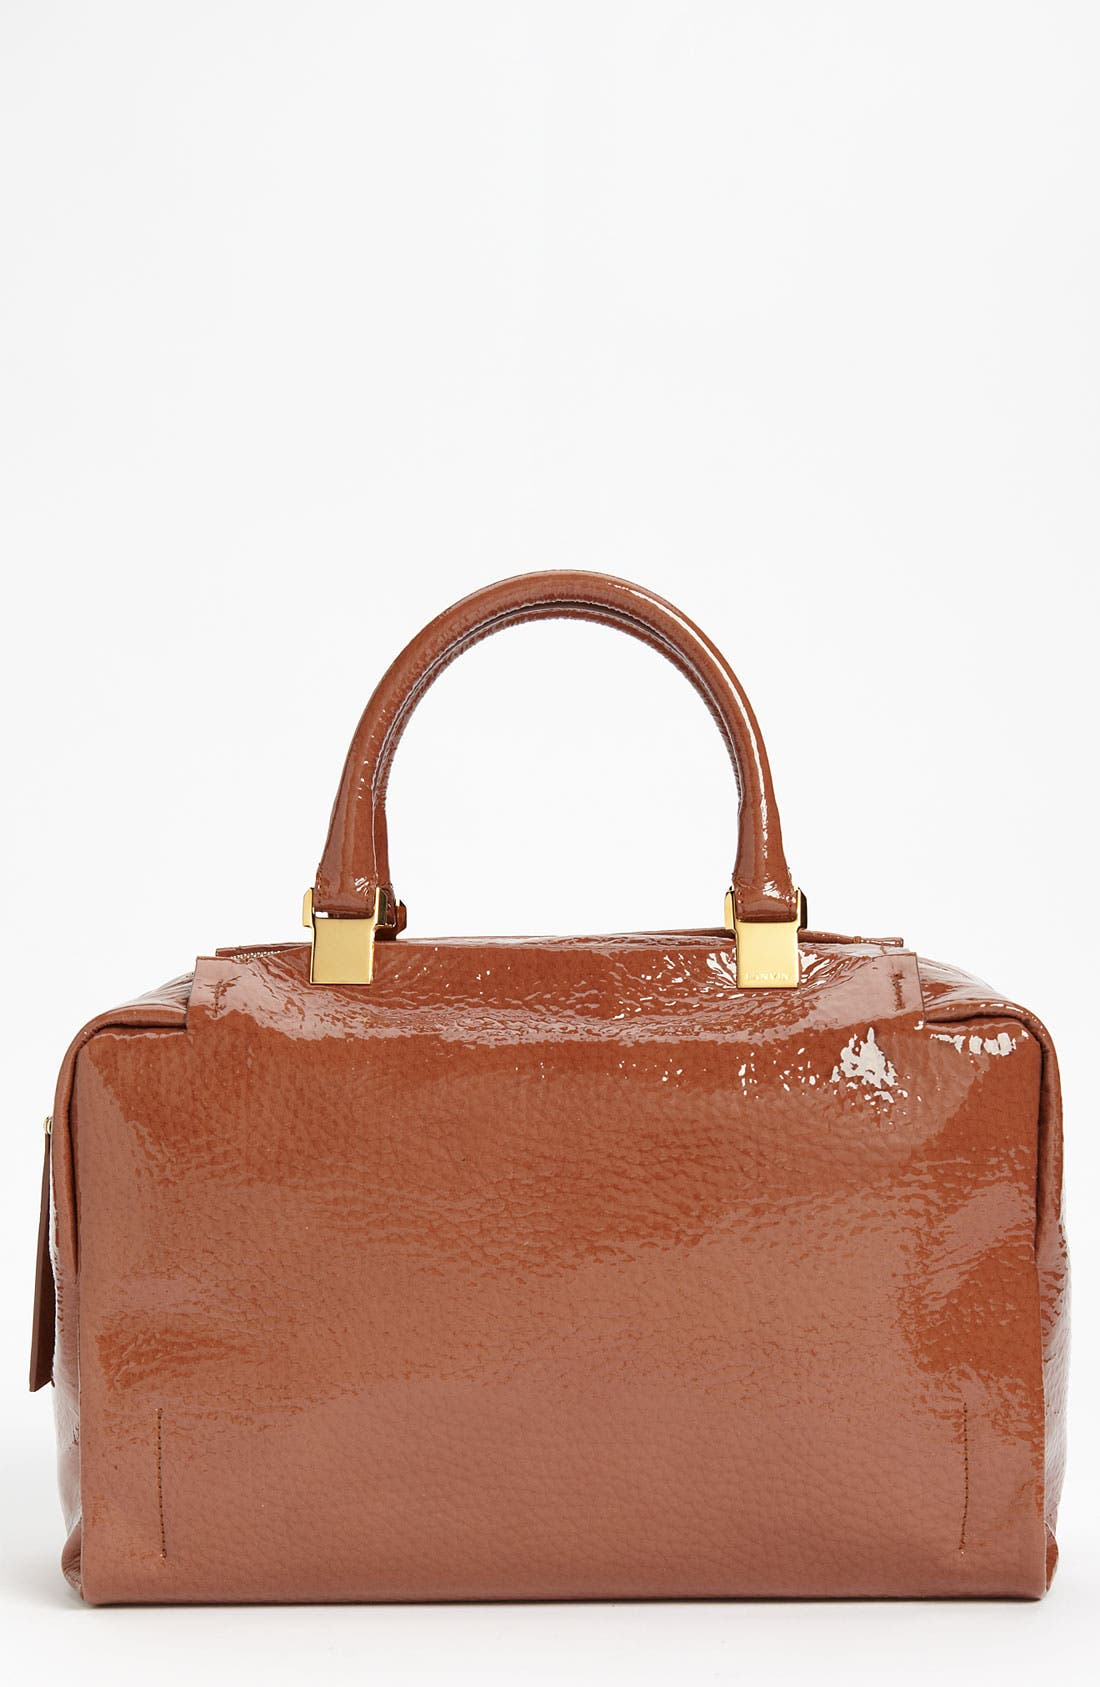 Alternate Image 1 Selected - Lanvin 'Moon River' Patent Leather Satchel